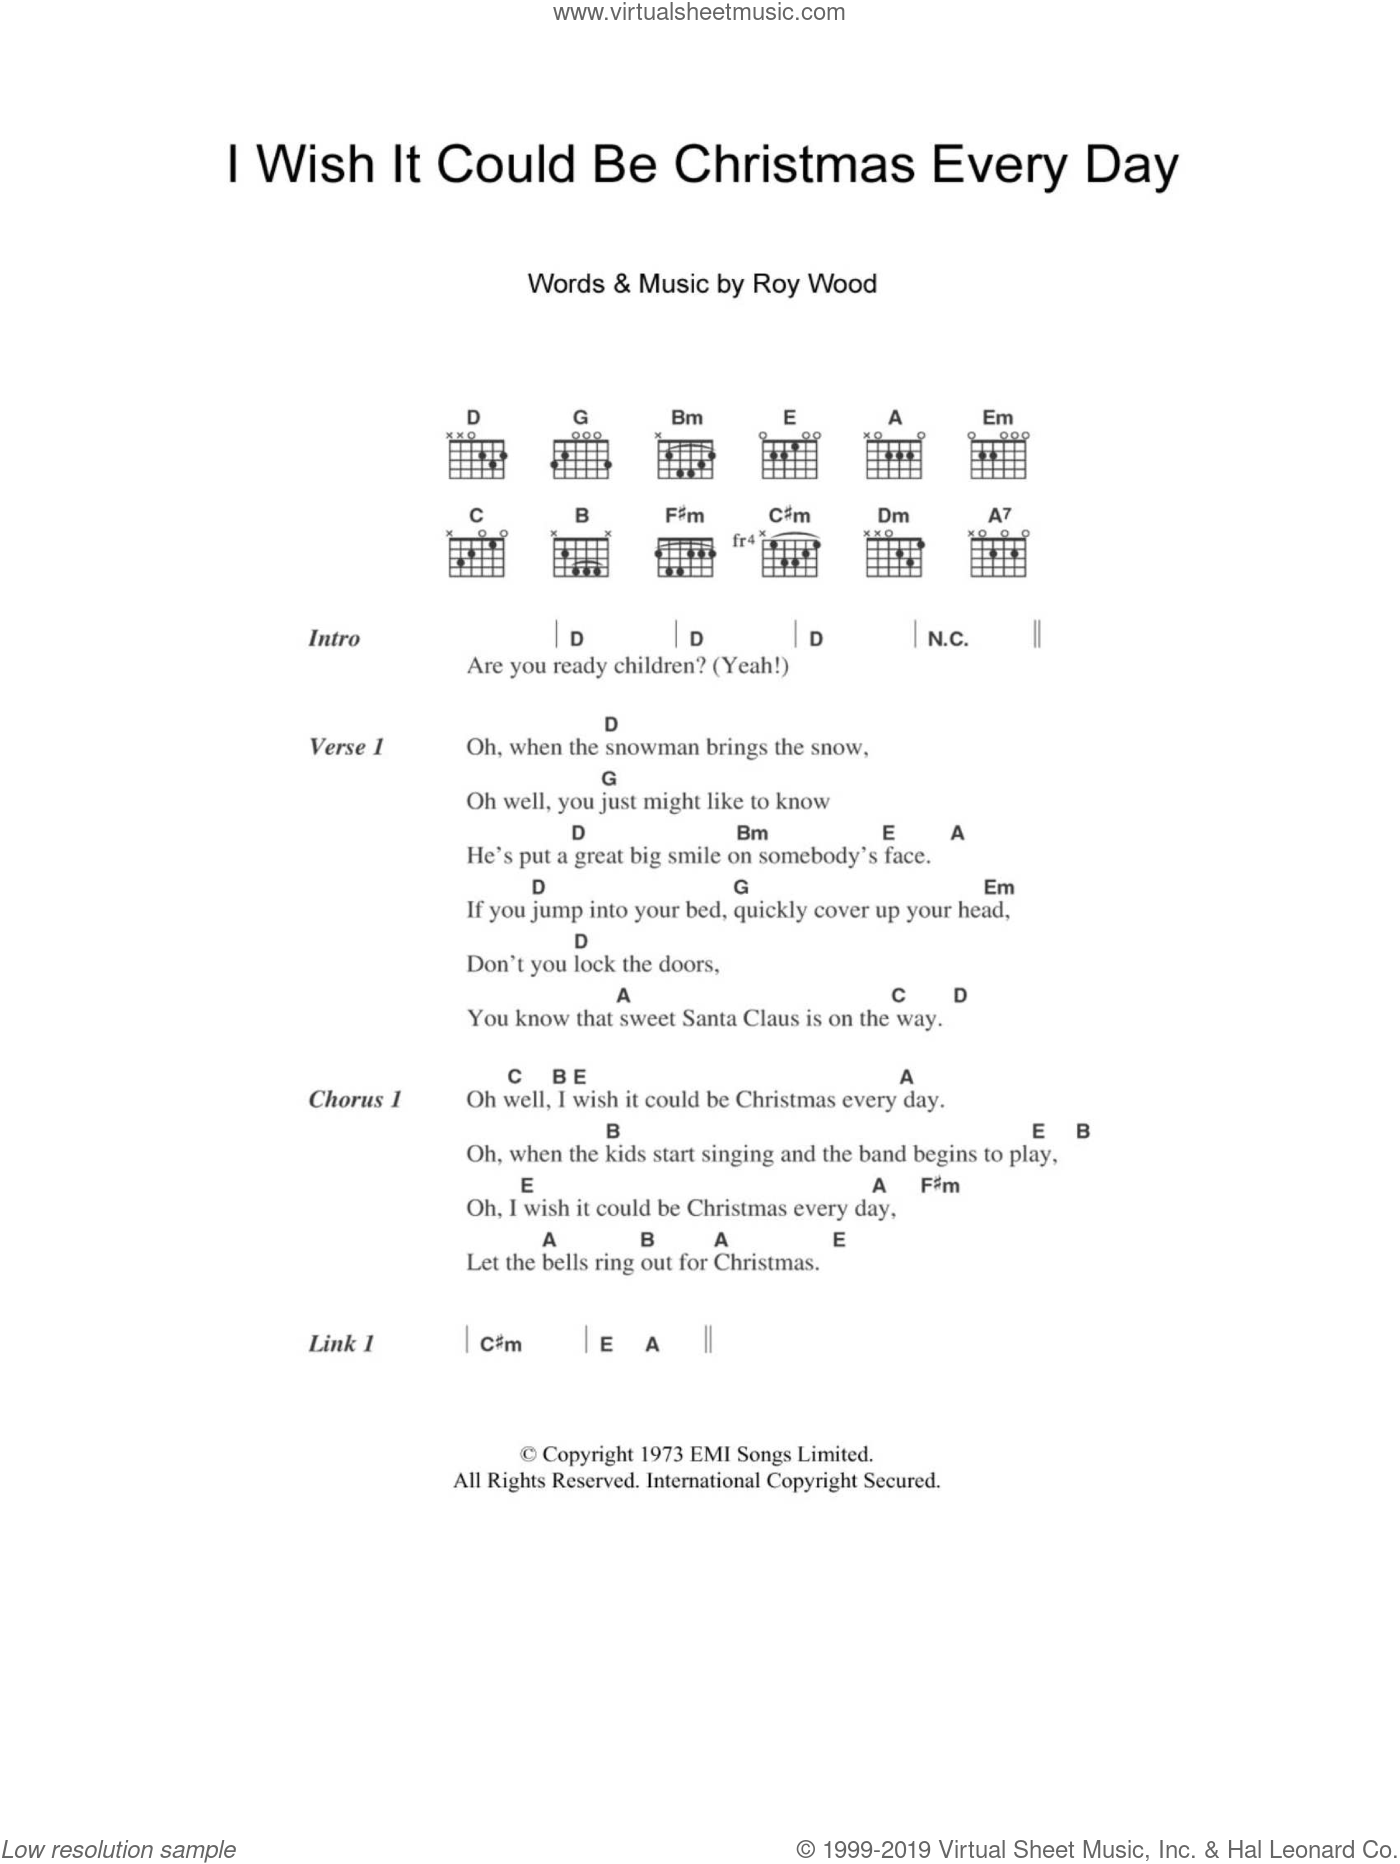 I Wish It Could Be Christmas Every Day sheet music for guitar (chords) by Wizzard, Christmas carol score, intermediate guitar (chords). Score Image Preview.